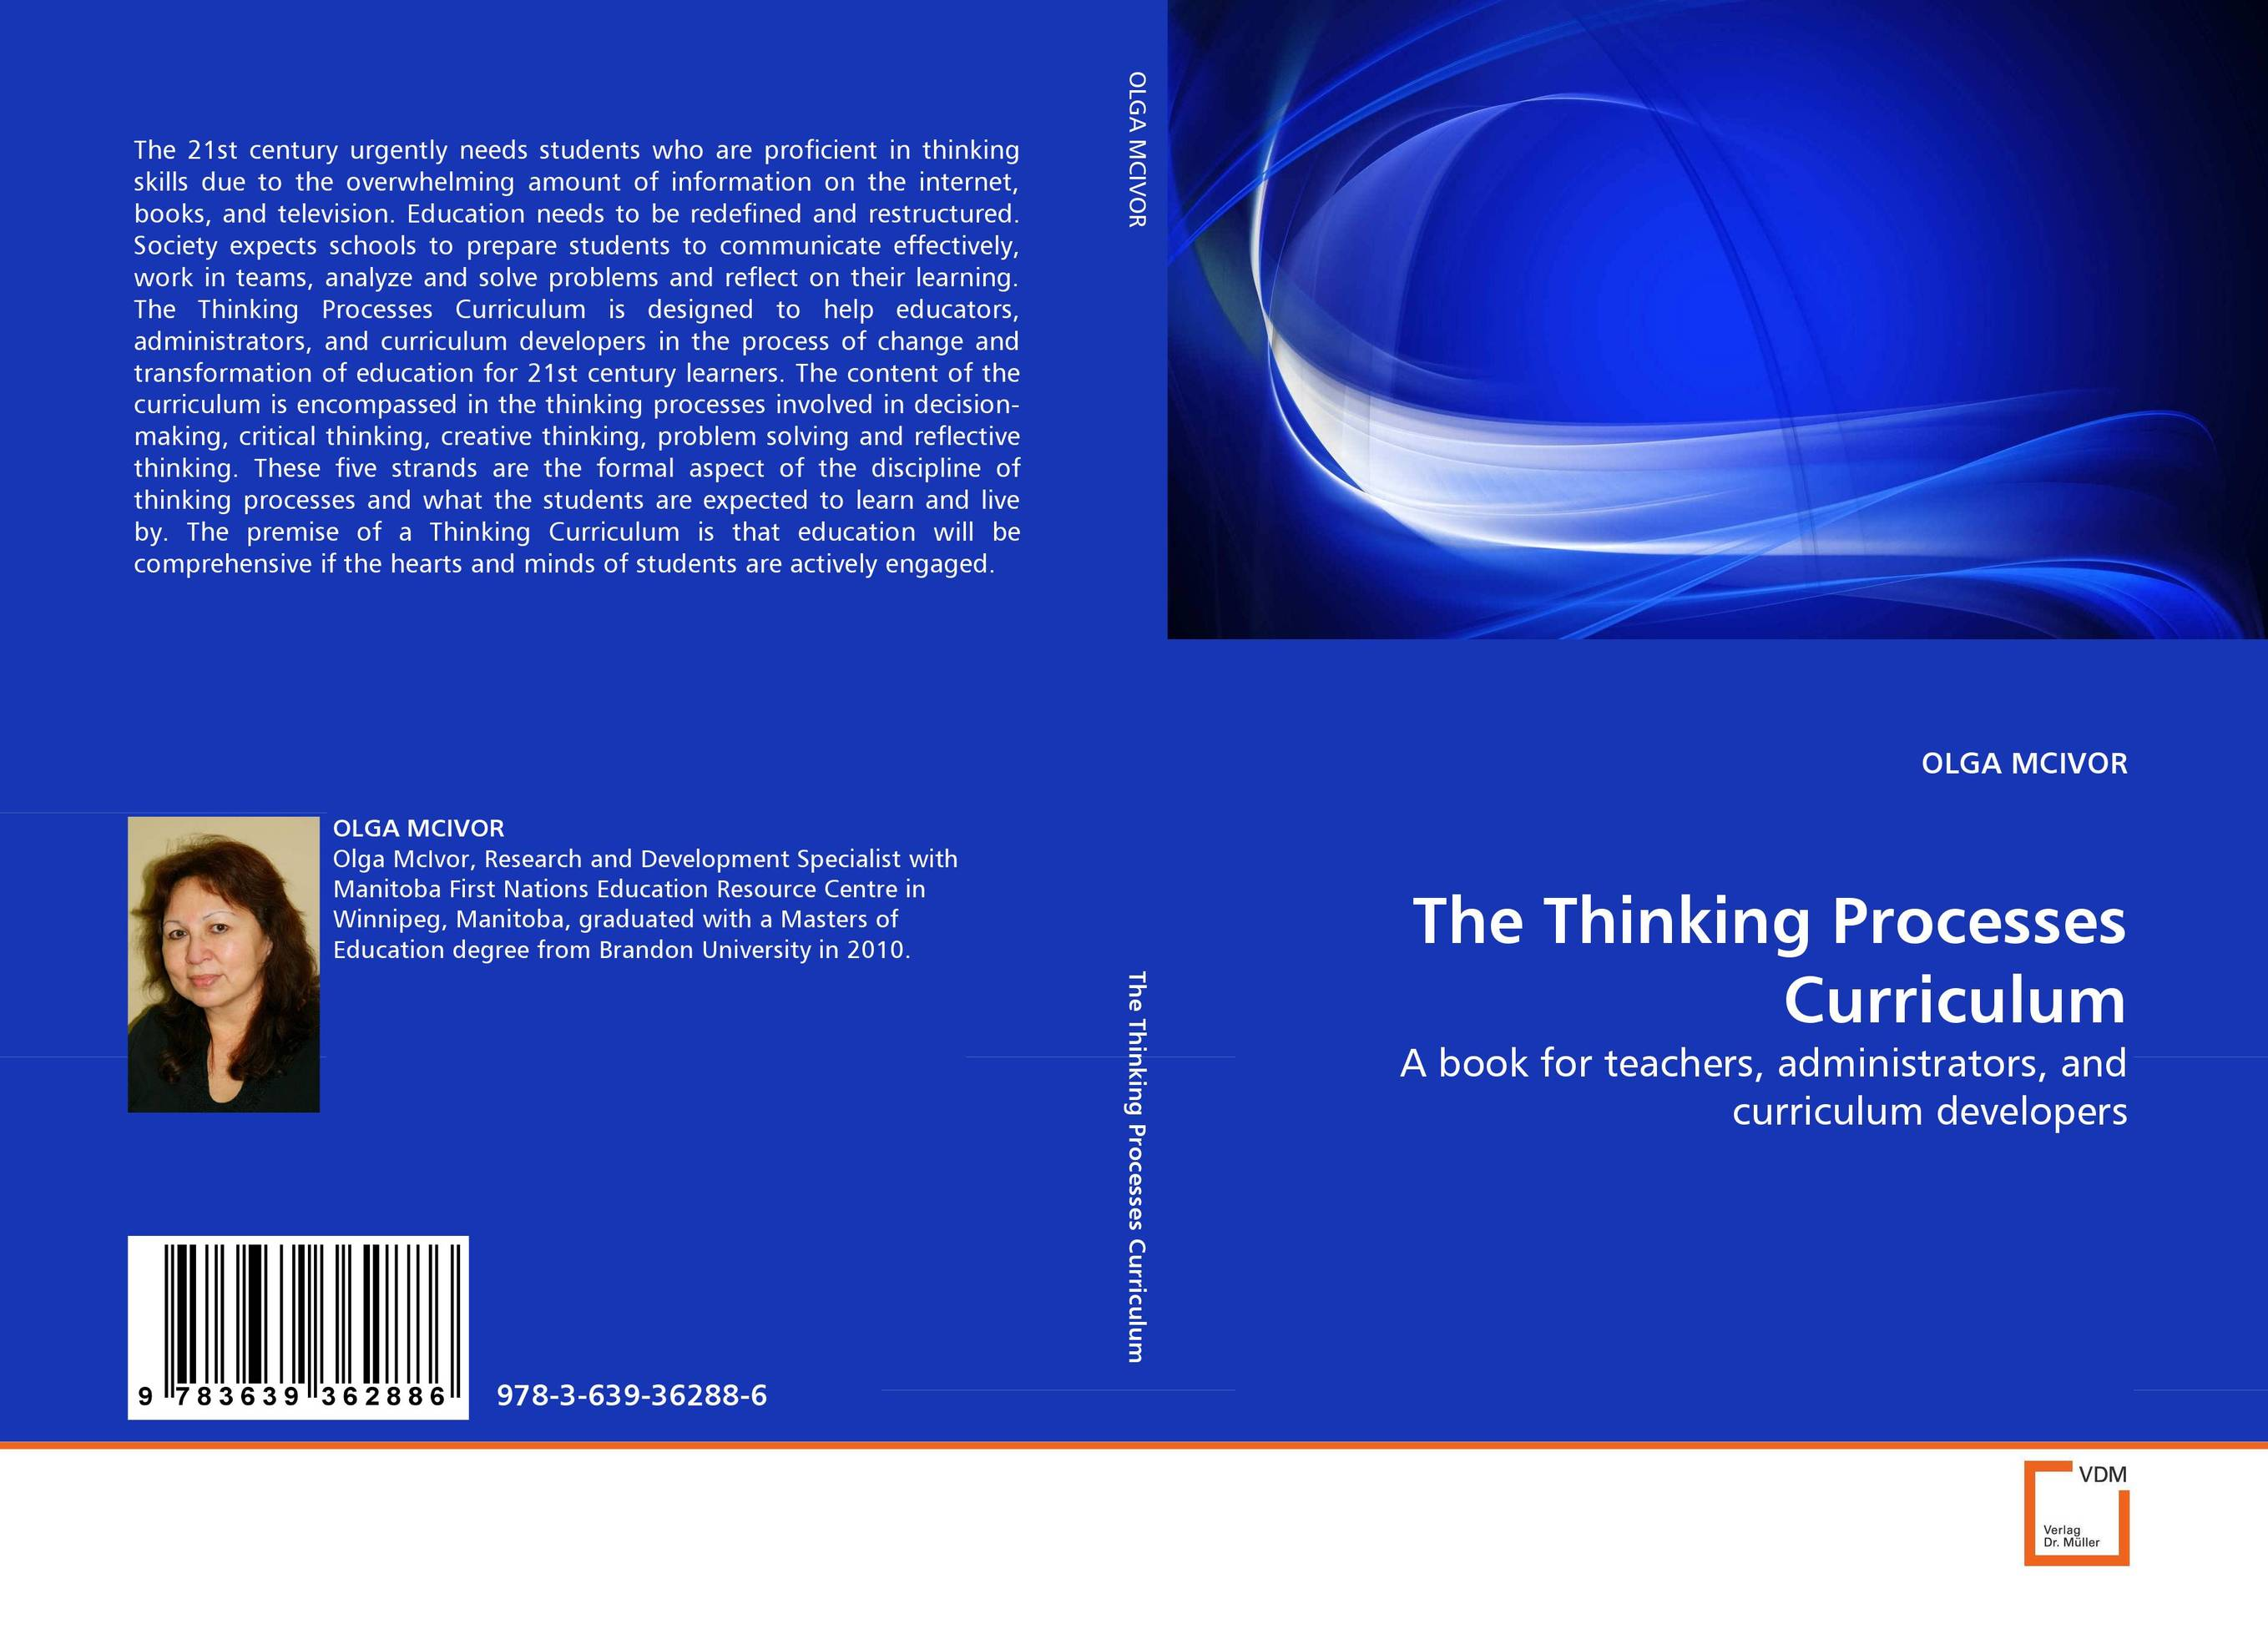 The Thinking Processes Curriculum dobelli r the art of thinking clearly